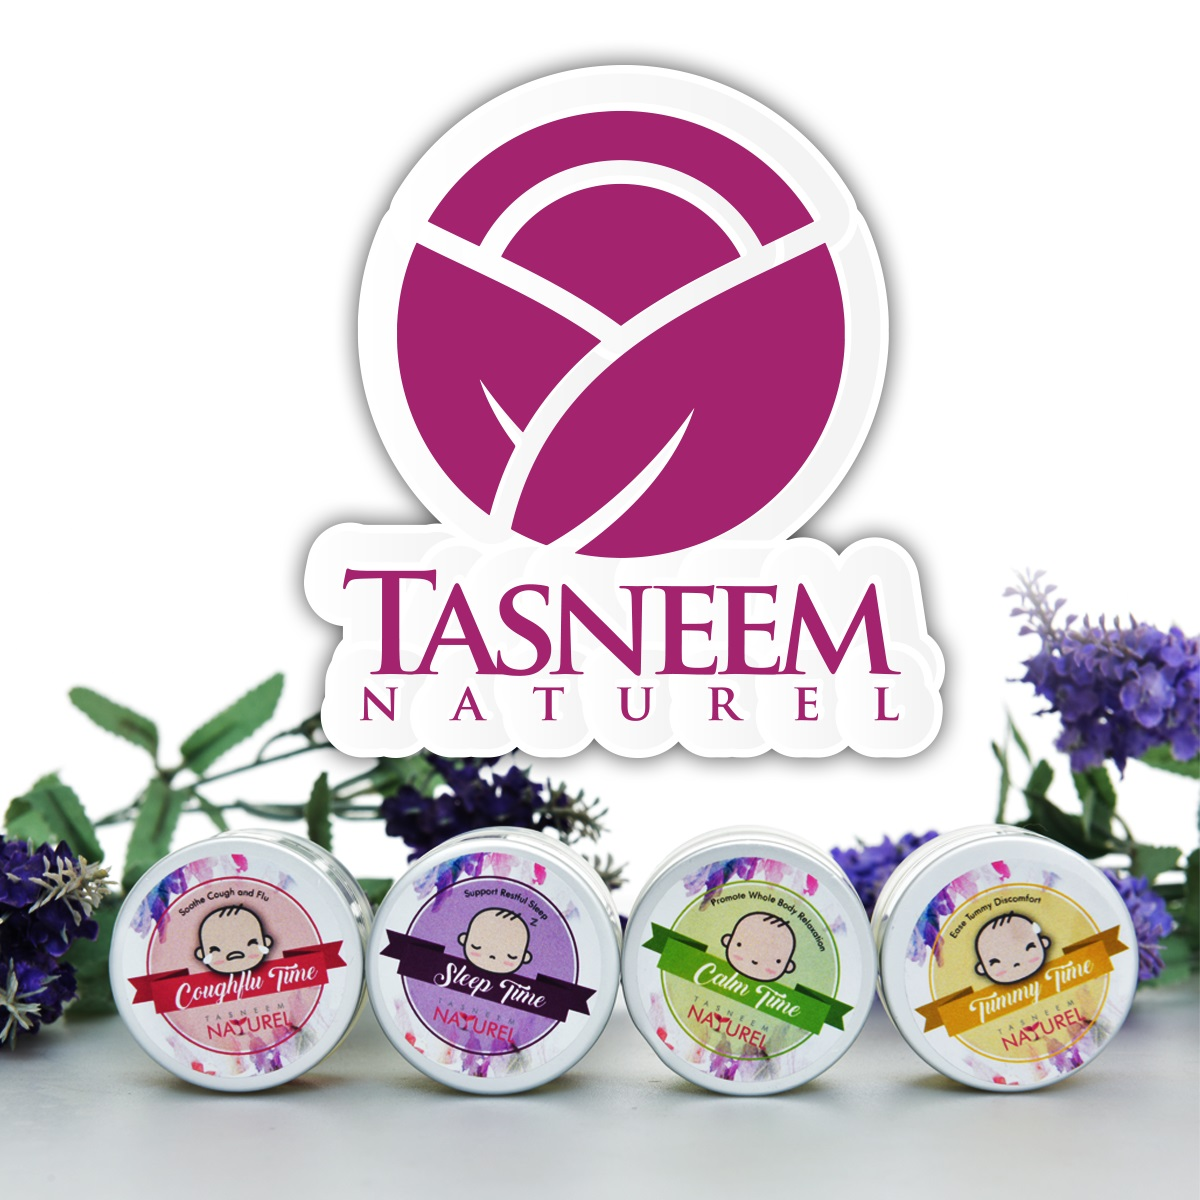 tasneem naturel 1.jpg